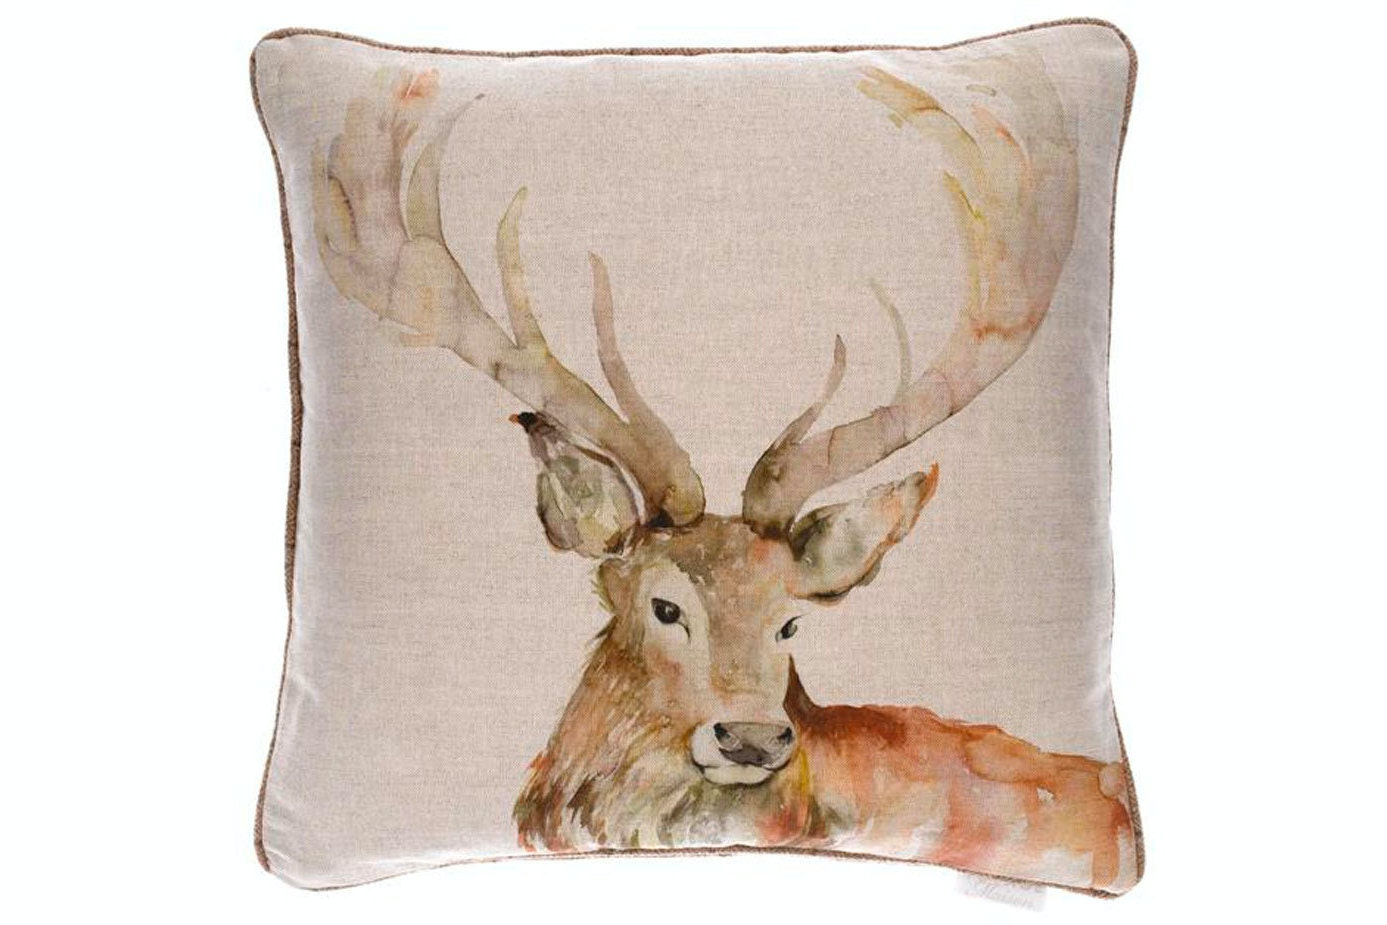 Gregor Stag Cushion